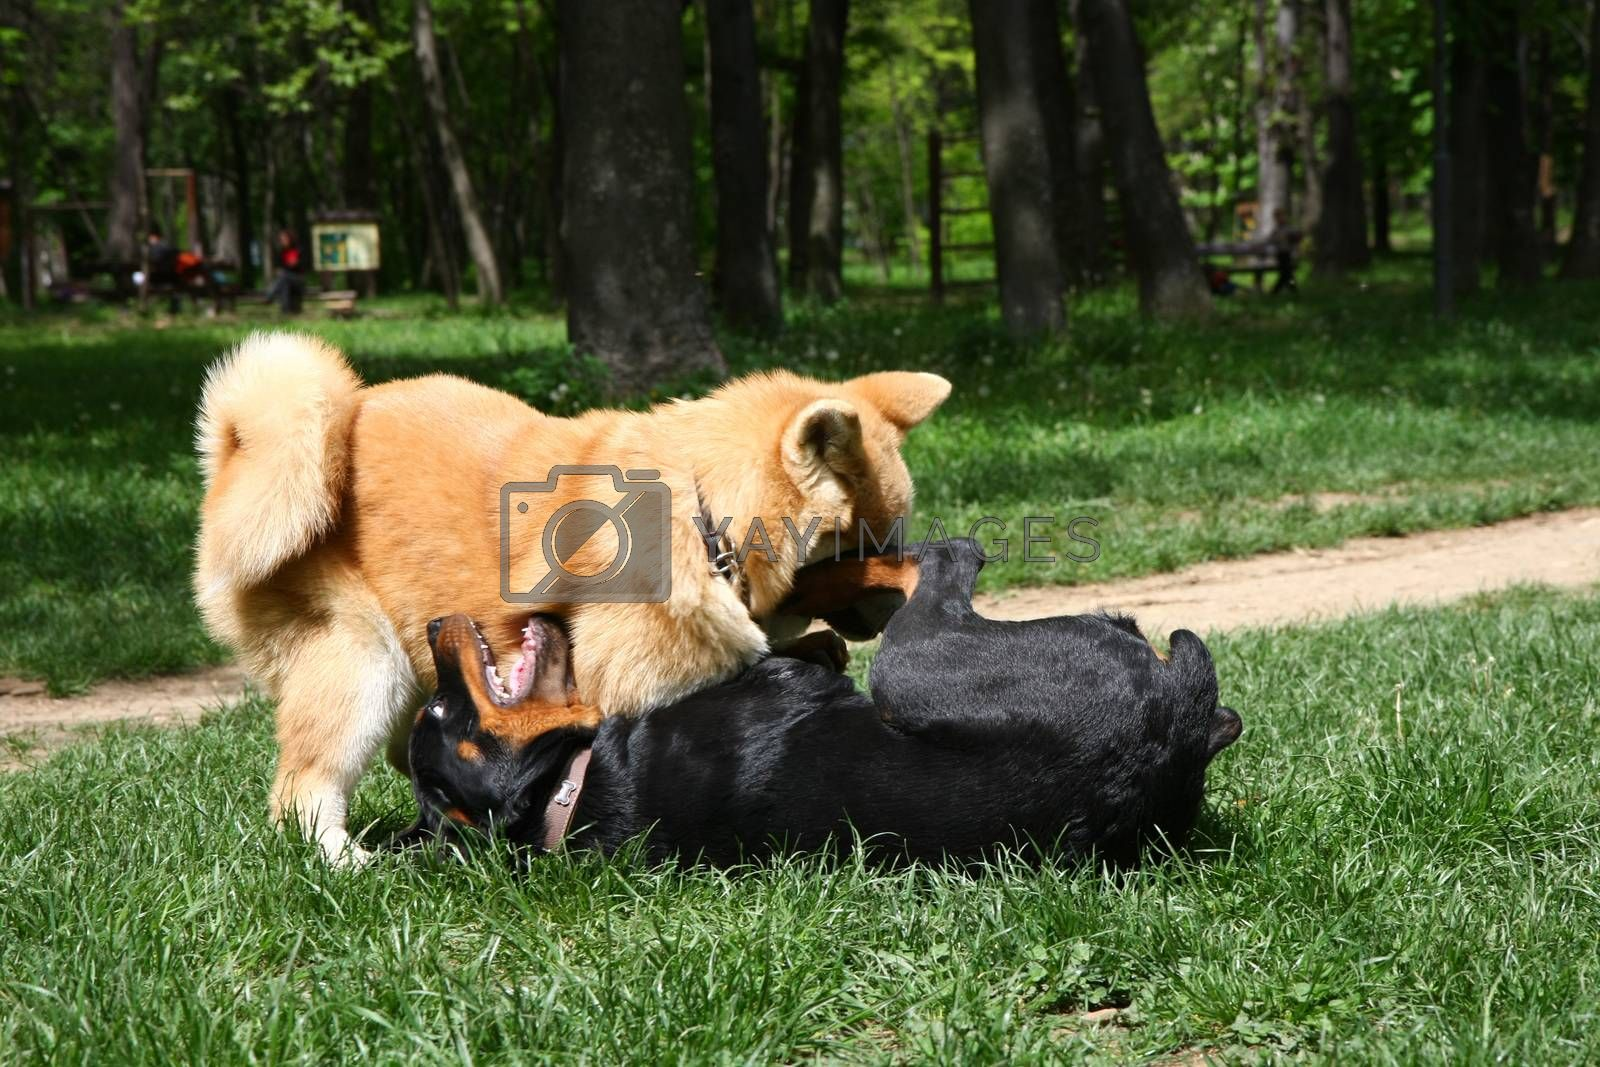 Rottweiler and Akita Inu puppies playing in public park